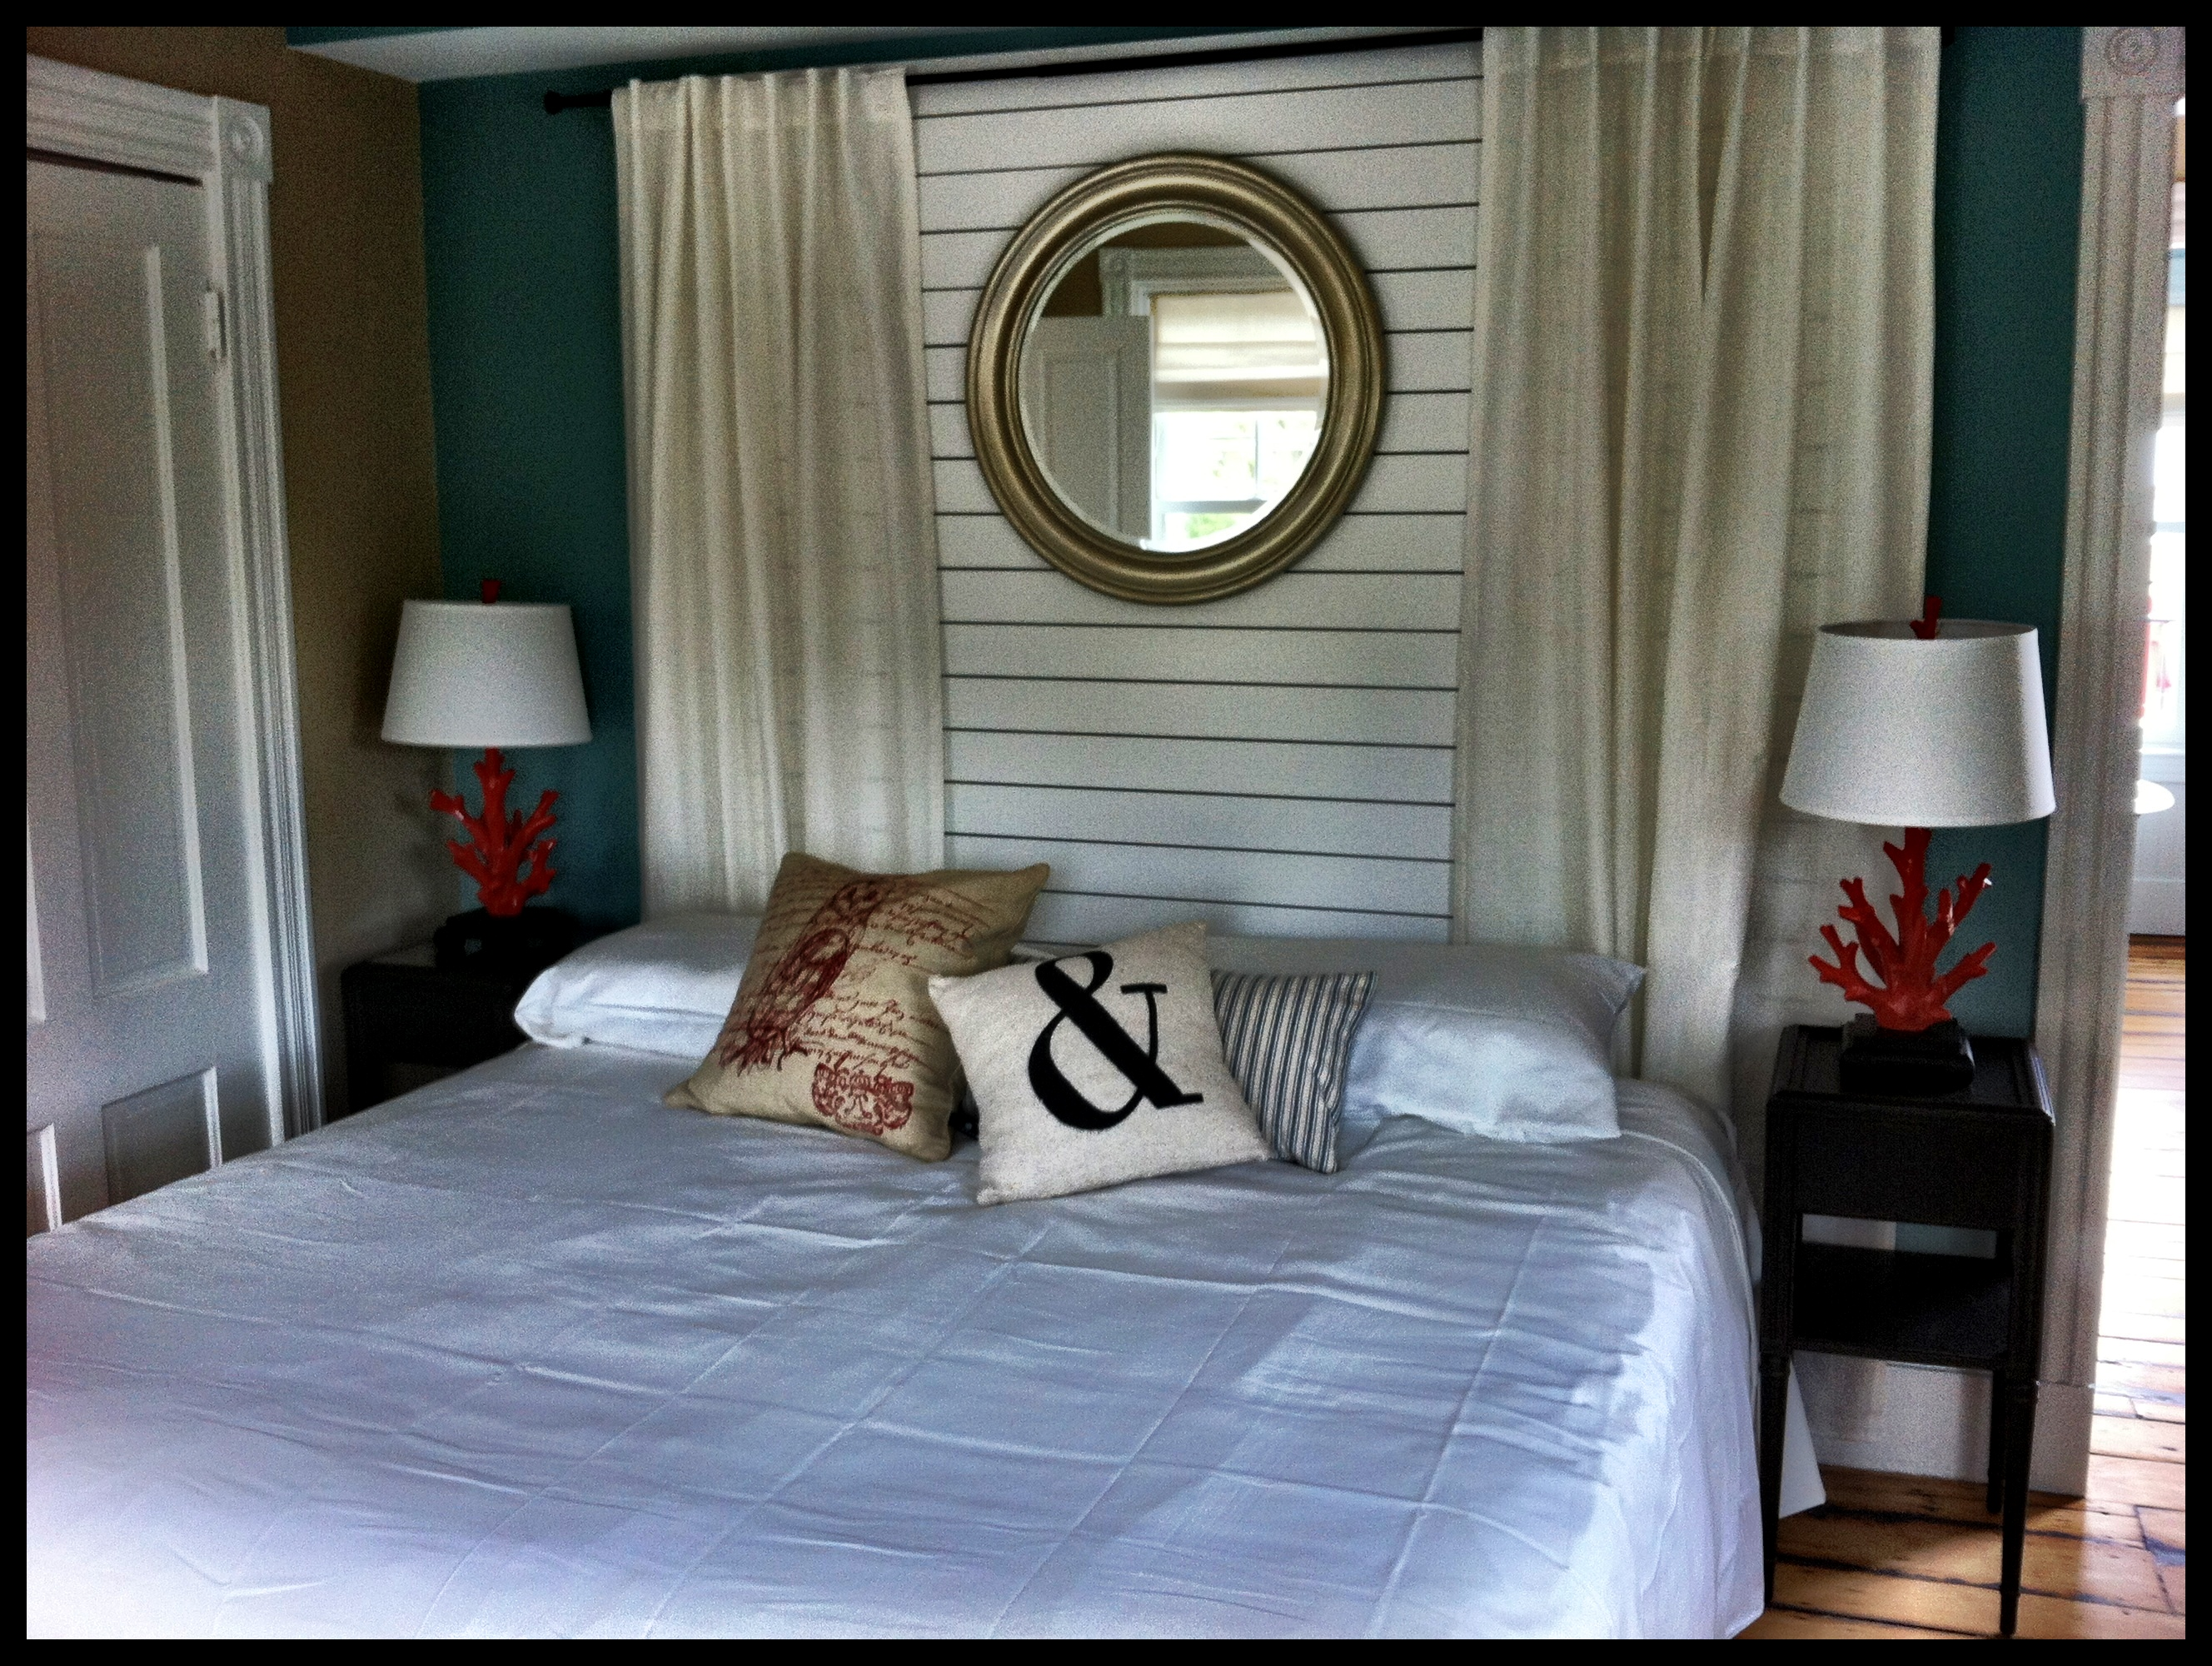 Modern decor and amenities at the Woods Hole Inn.